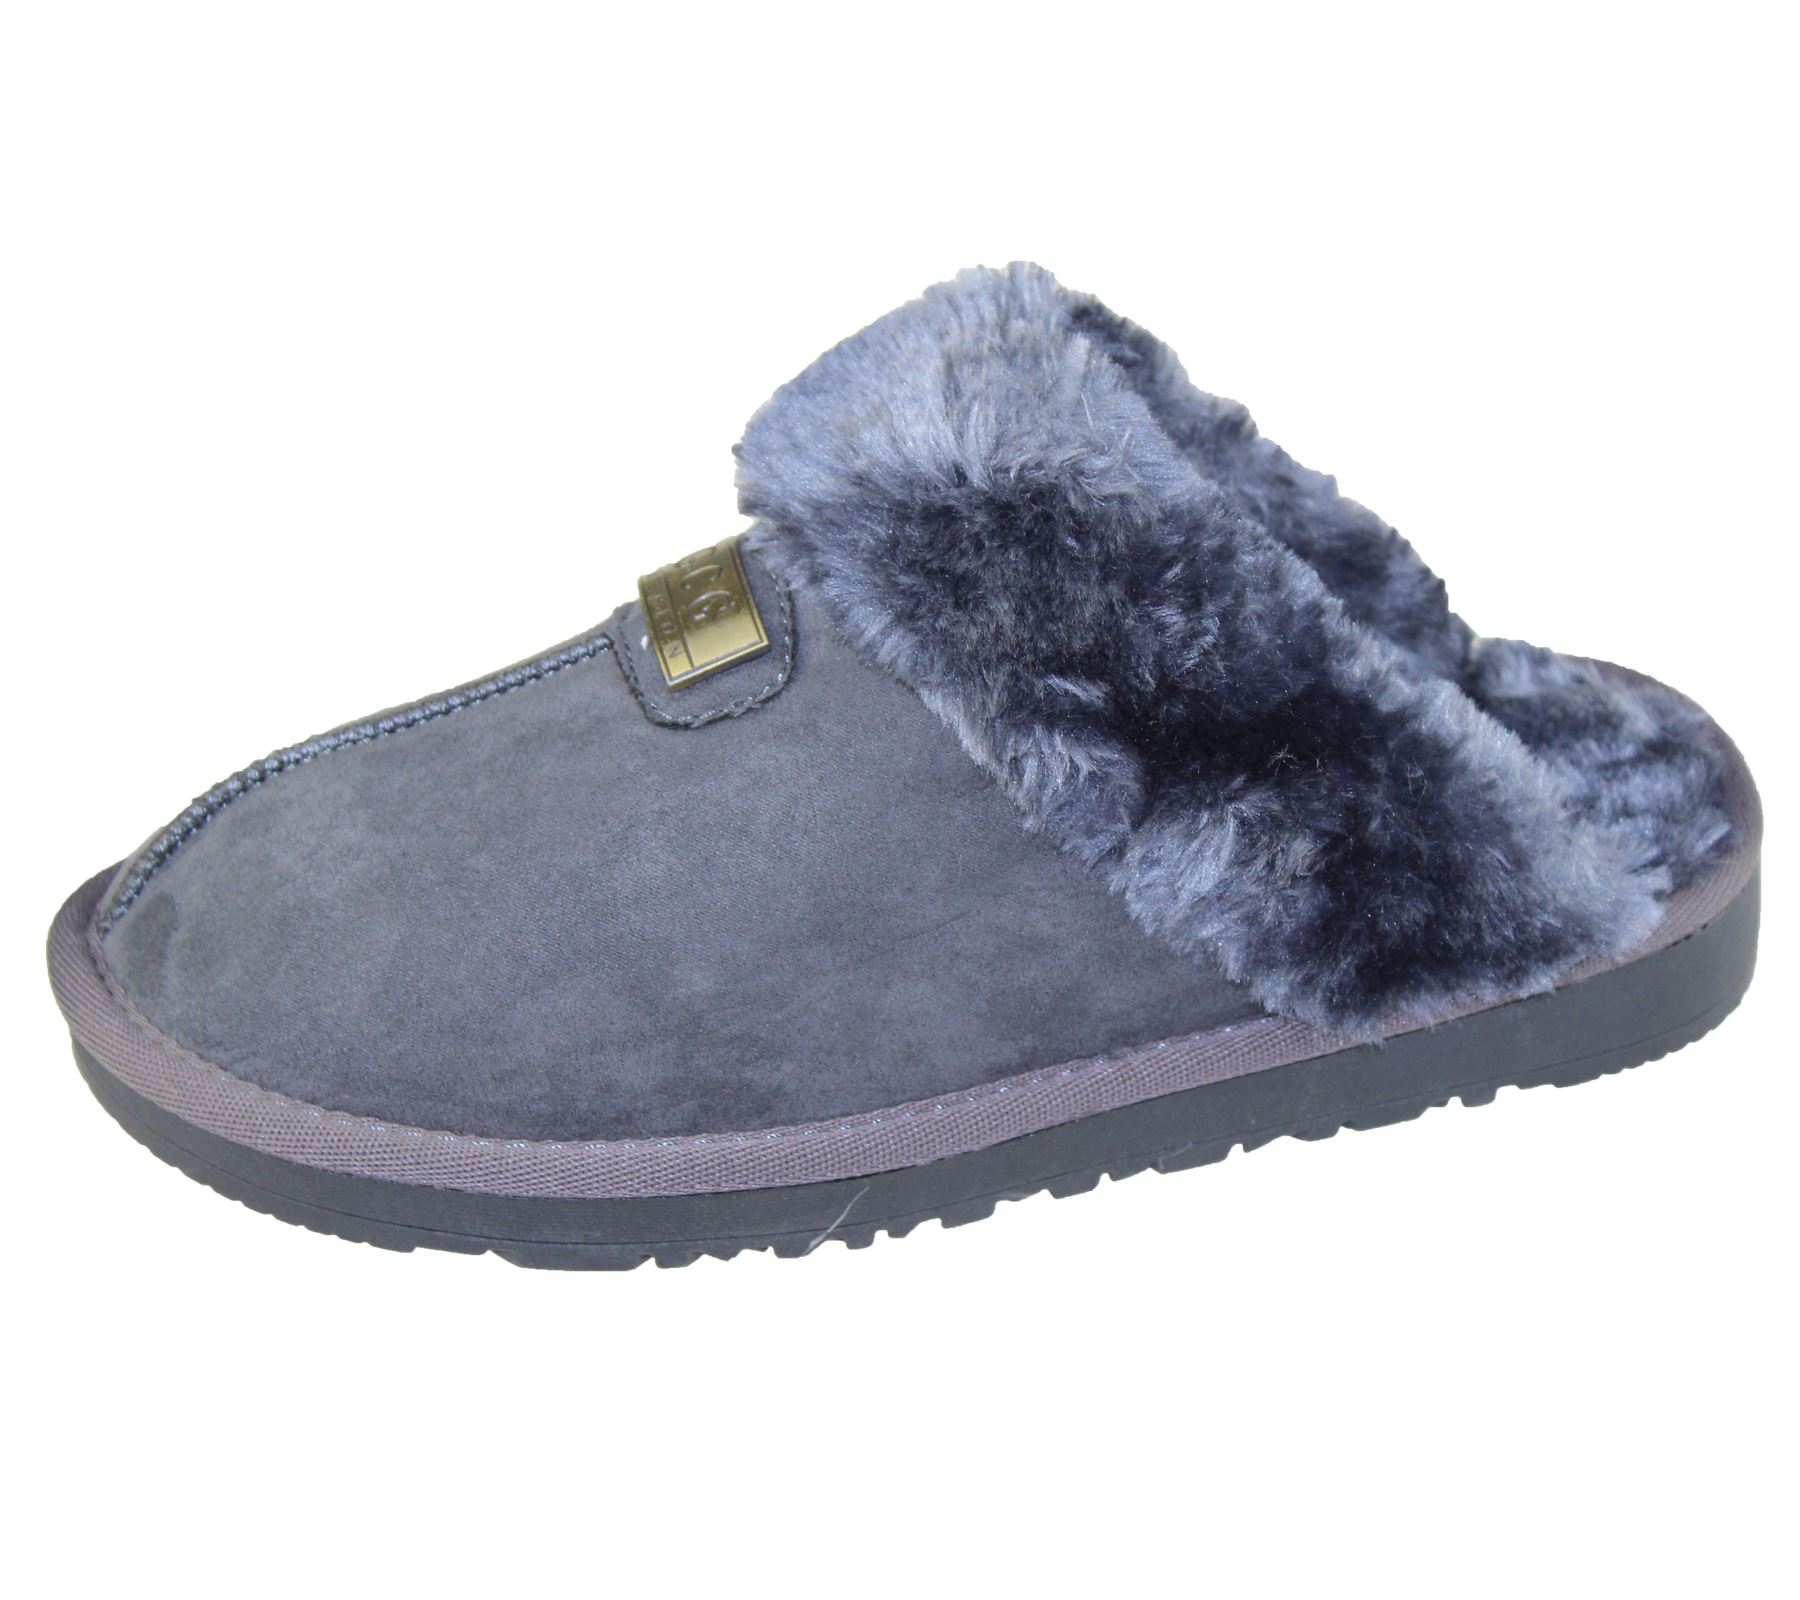 Womens-Fur-Lined-Slippers-Ladies-Mules-Non-Slip-Rubber-Sole-Shoes miniatura 34